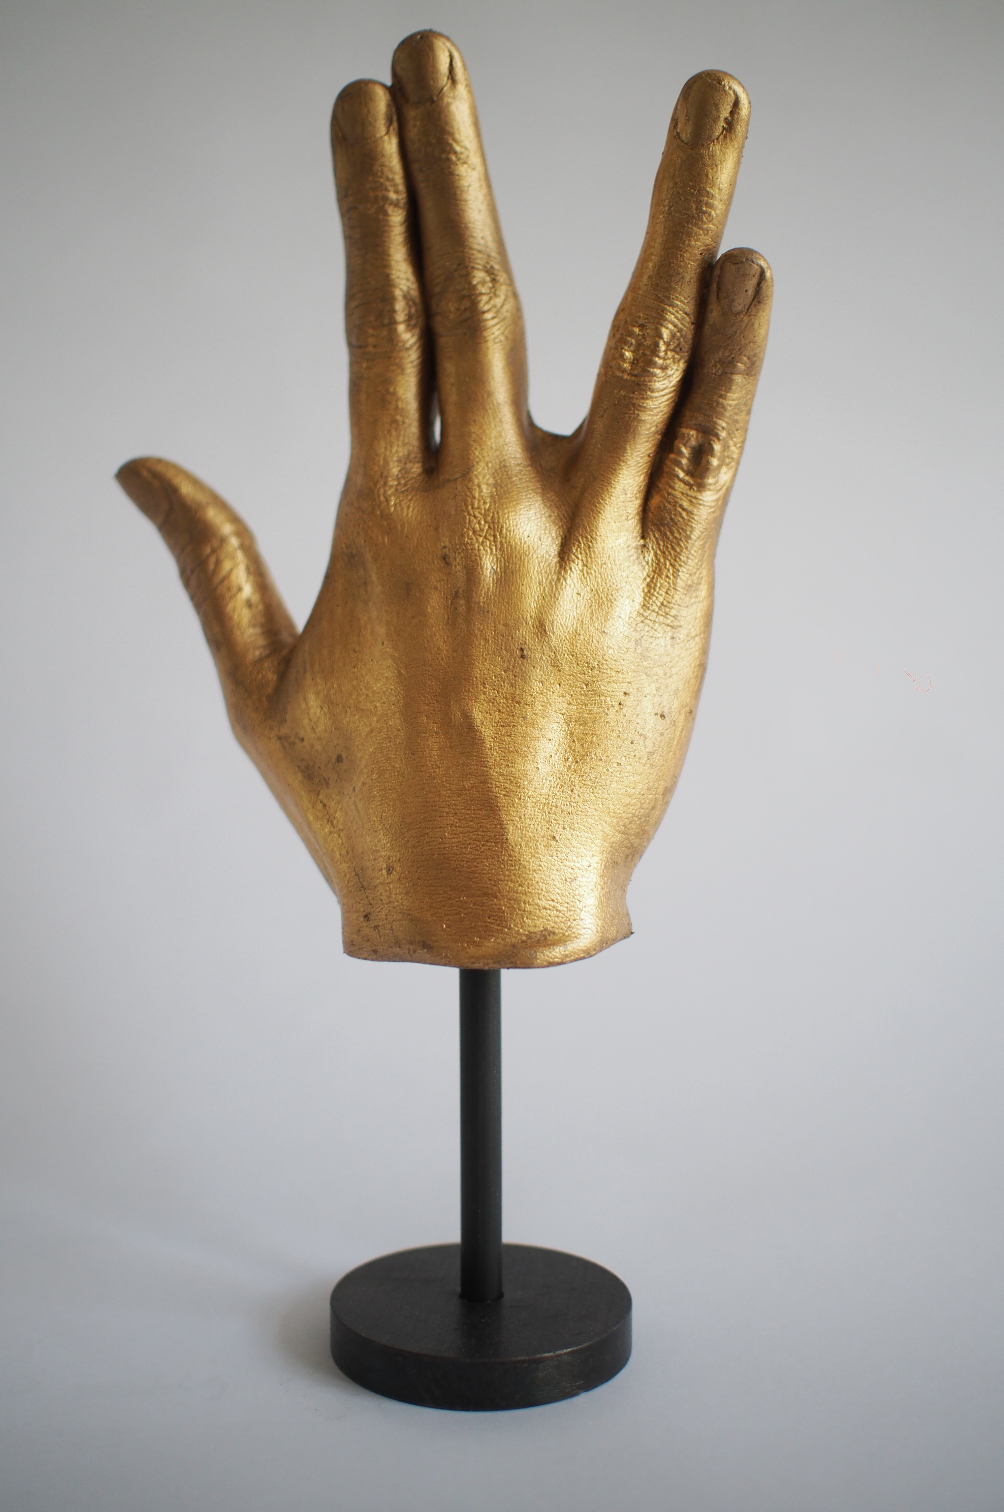 <p>Trophy 2015, Yael Bartana</p>